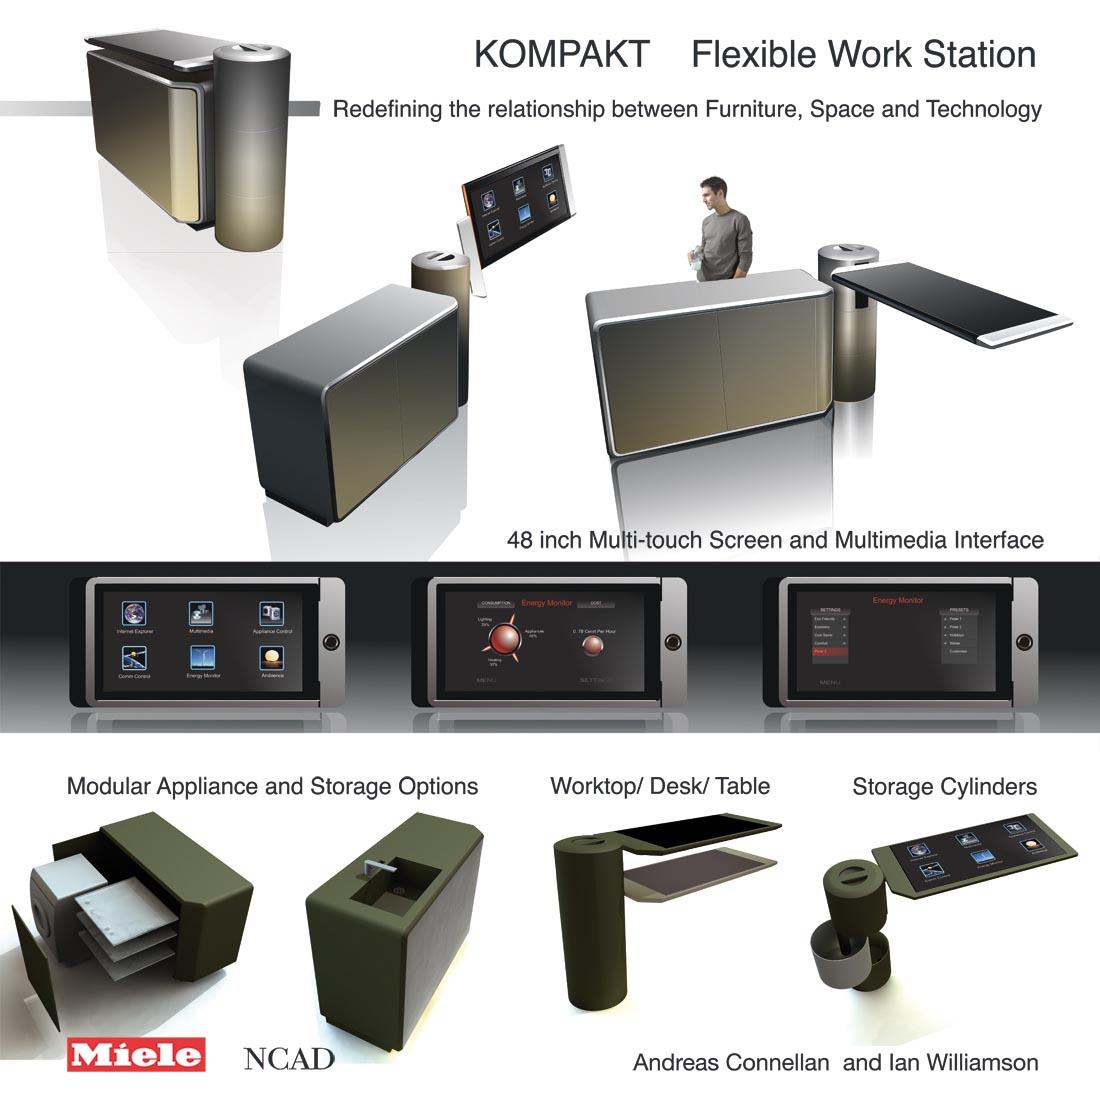 Uncategorized Future Kitchen Appliances miele www lost buoys com for this project in teams of two we were instructed to consider the brand and its future past trends kitchen appliances model